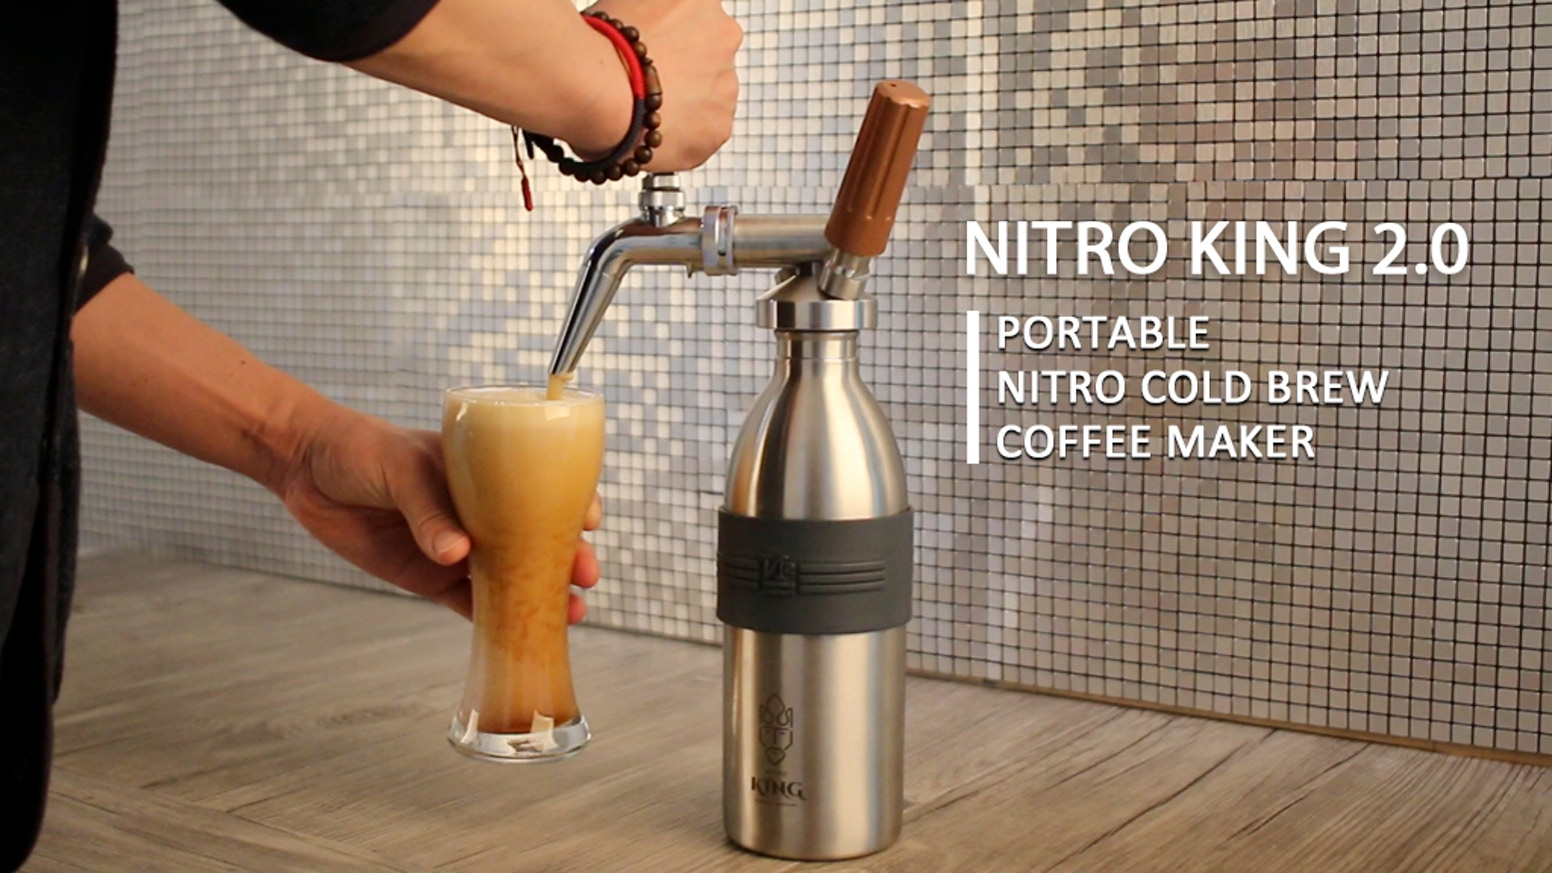 You can make and enjoy a variety of drinks and cold beverages in addition to nitro cold brew coffee by using Nitro King 2.0